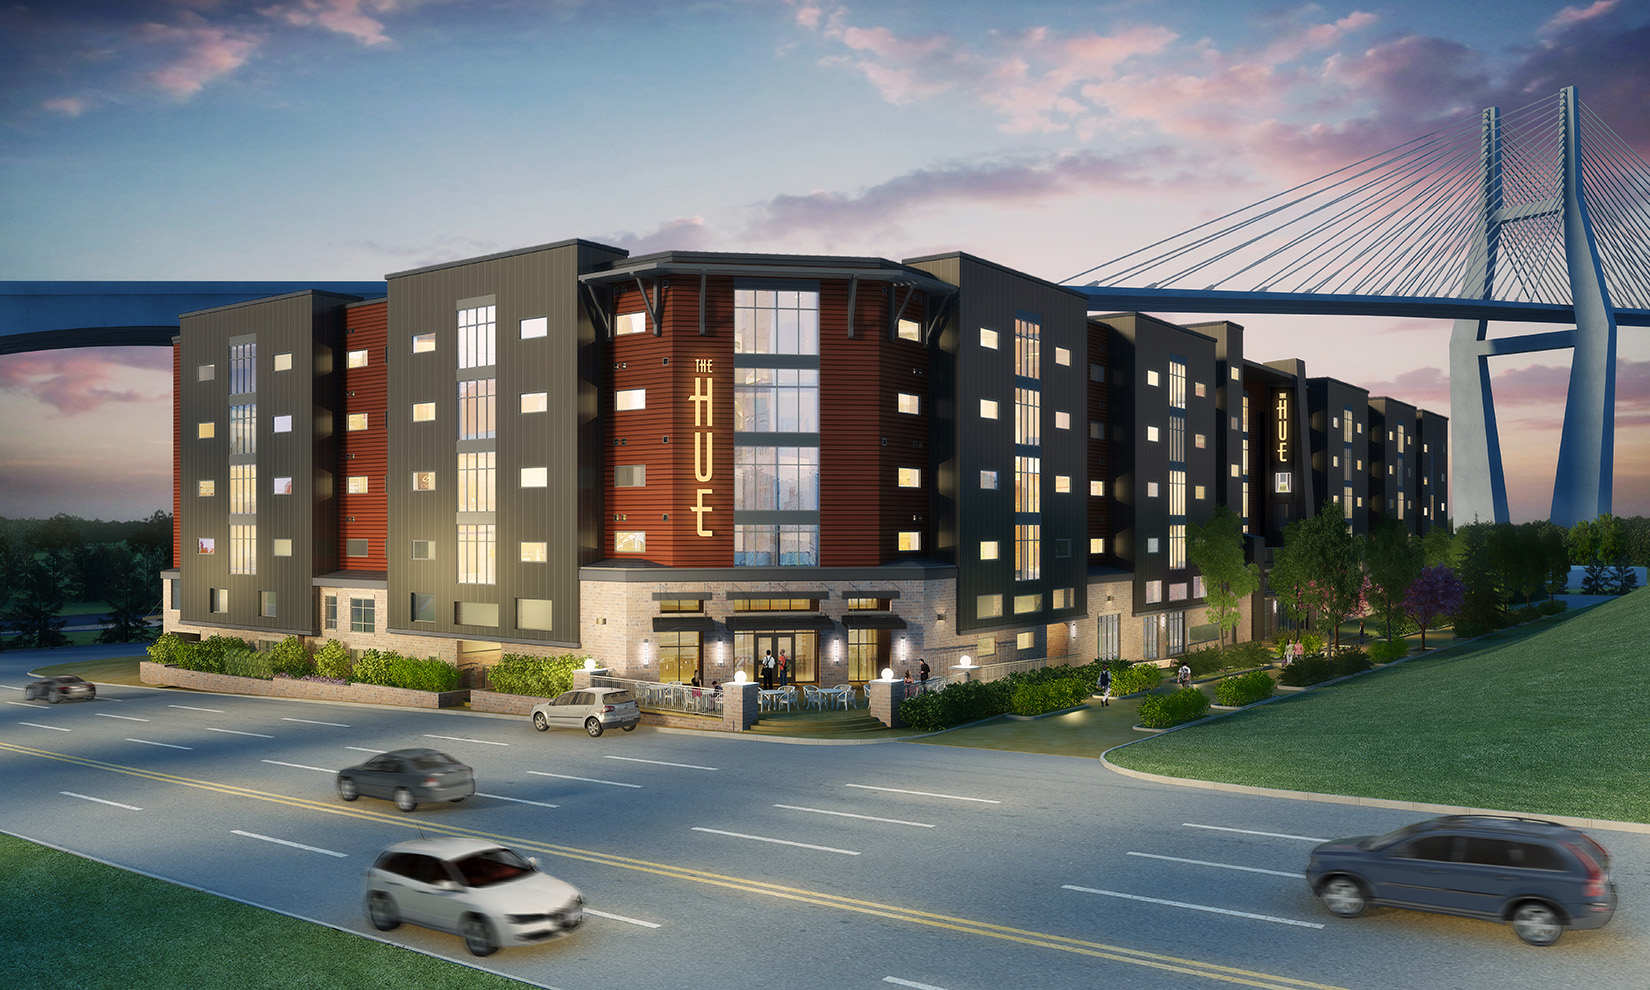 Dorm style apartments target students scad district for Apartments near savannah college of art and design